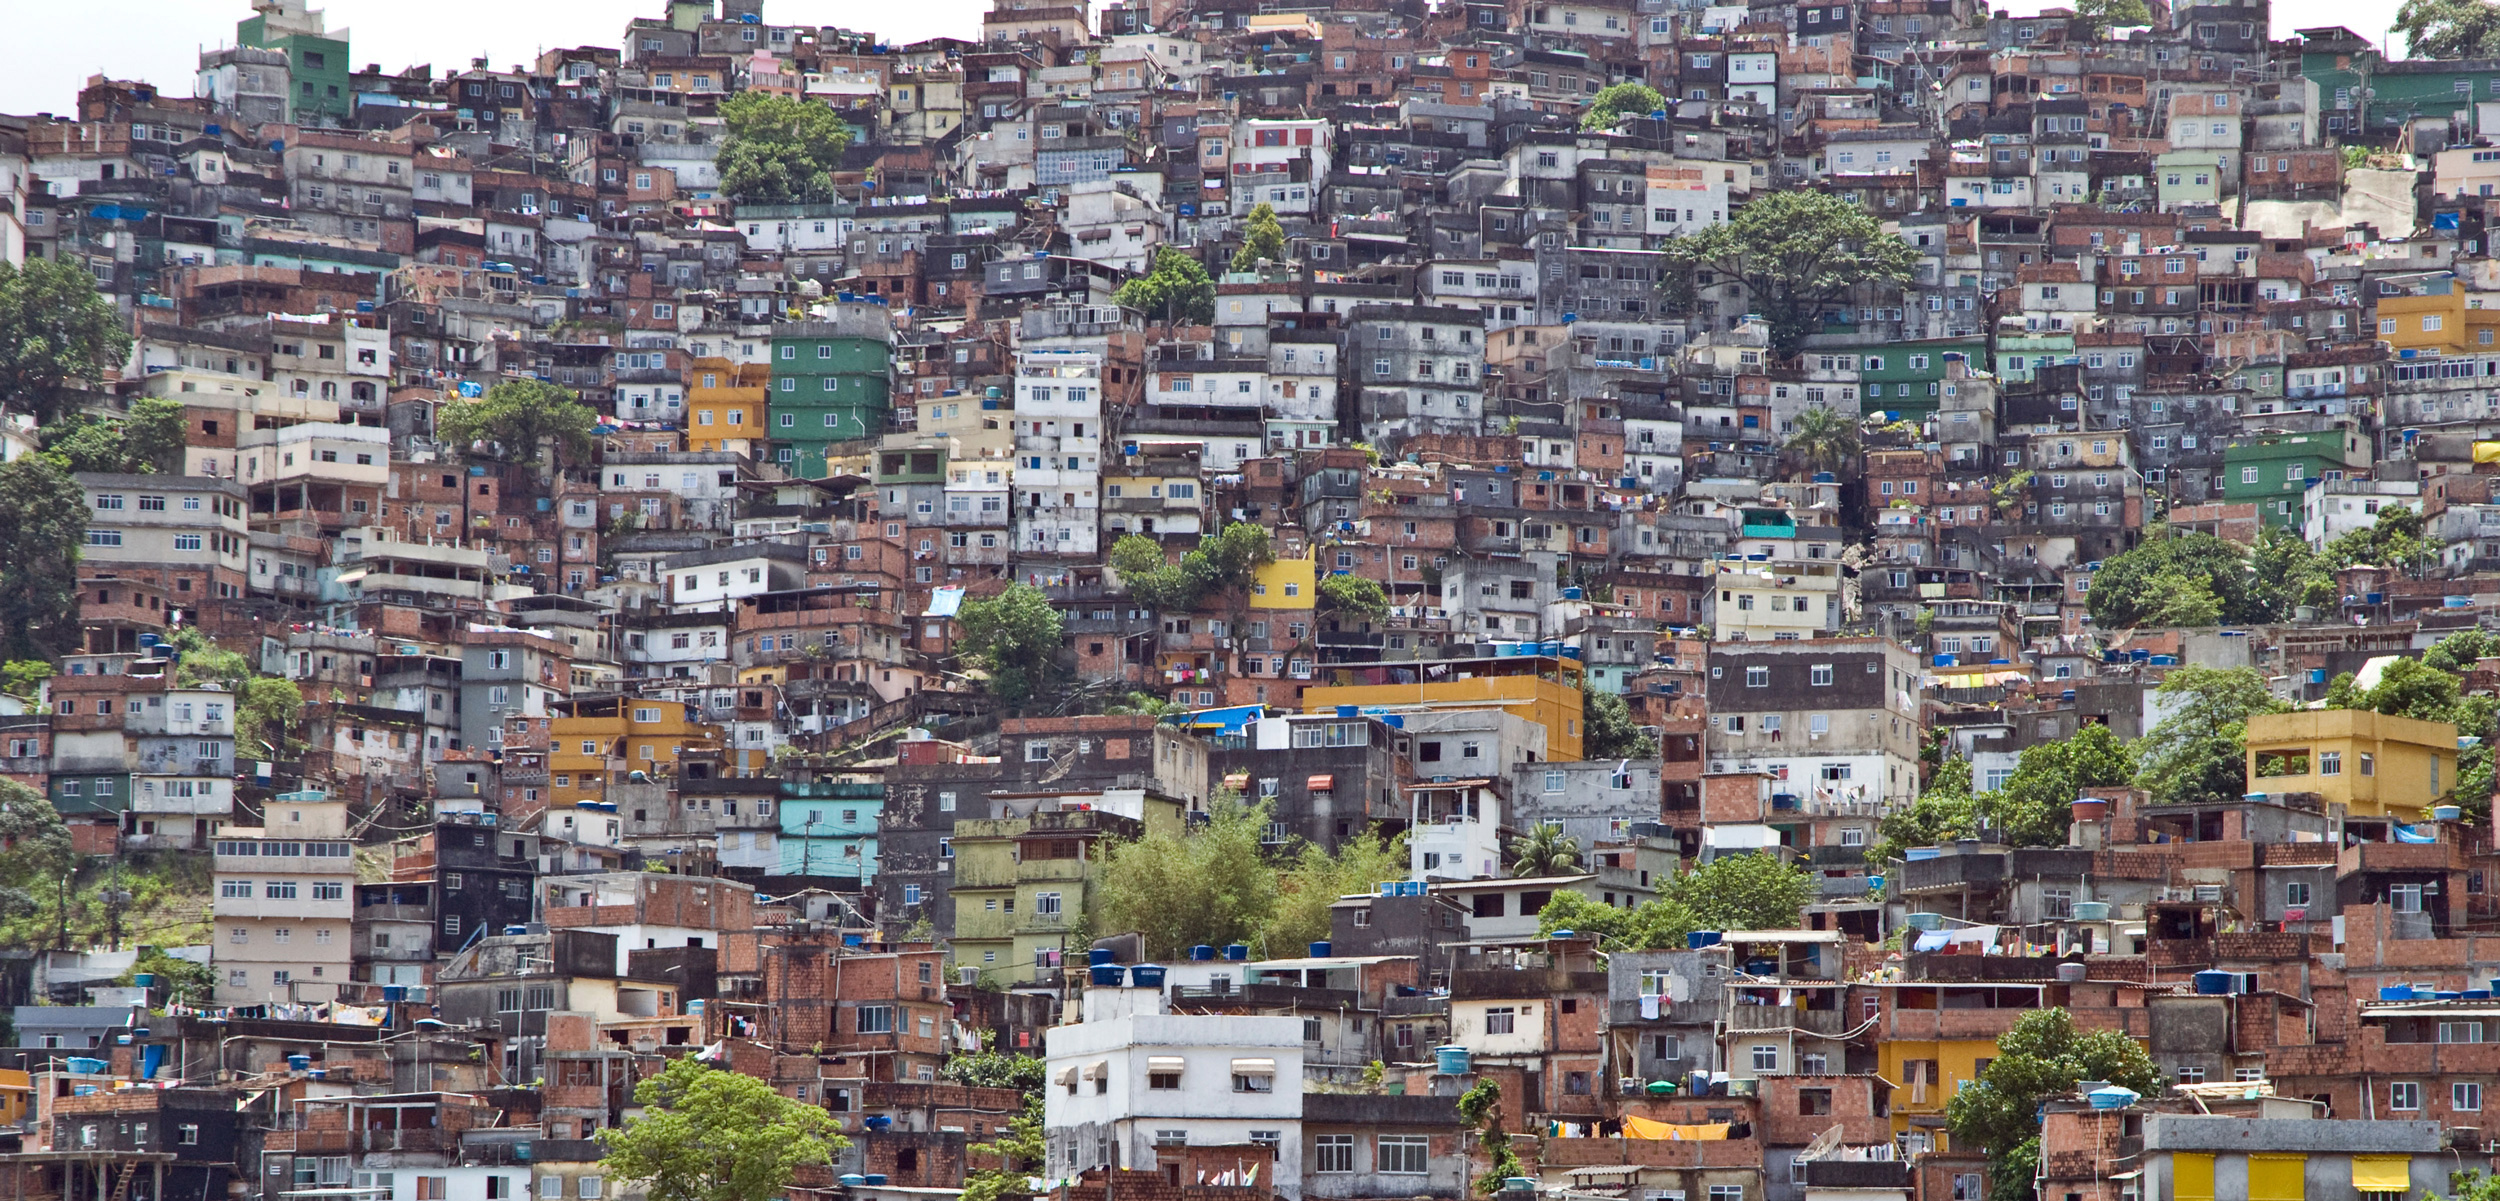 Favelas are the poor neighborhoods on the hillsides above the wealthy enclaves of old Rio de Janeiro. For the most part, residents of the favelas have been left out of the Olympic legacy. Photo by Simon Lowthian/Alamy Stock Photo